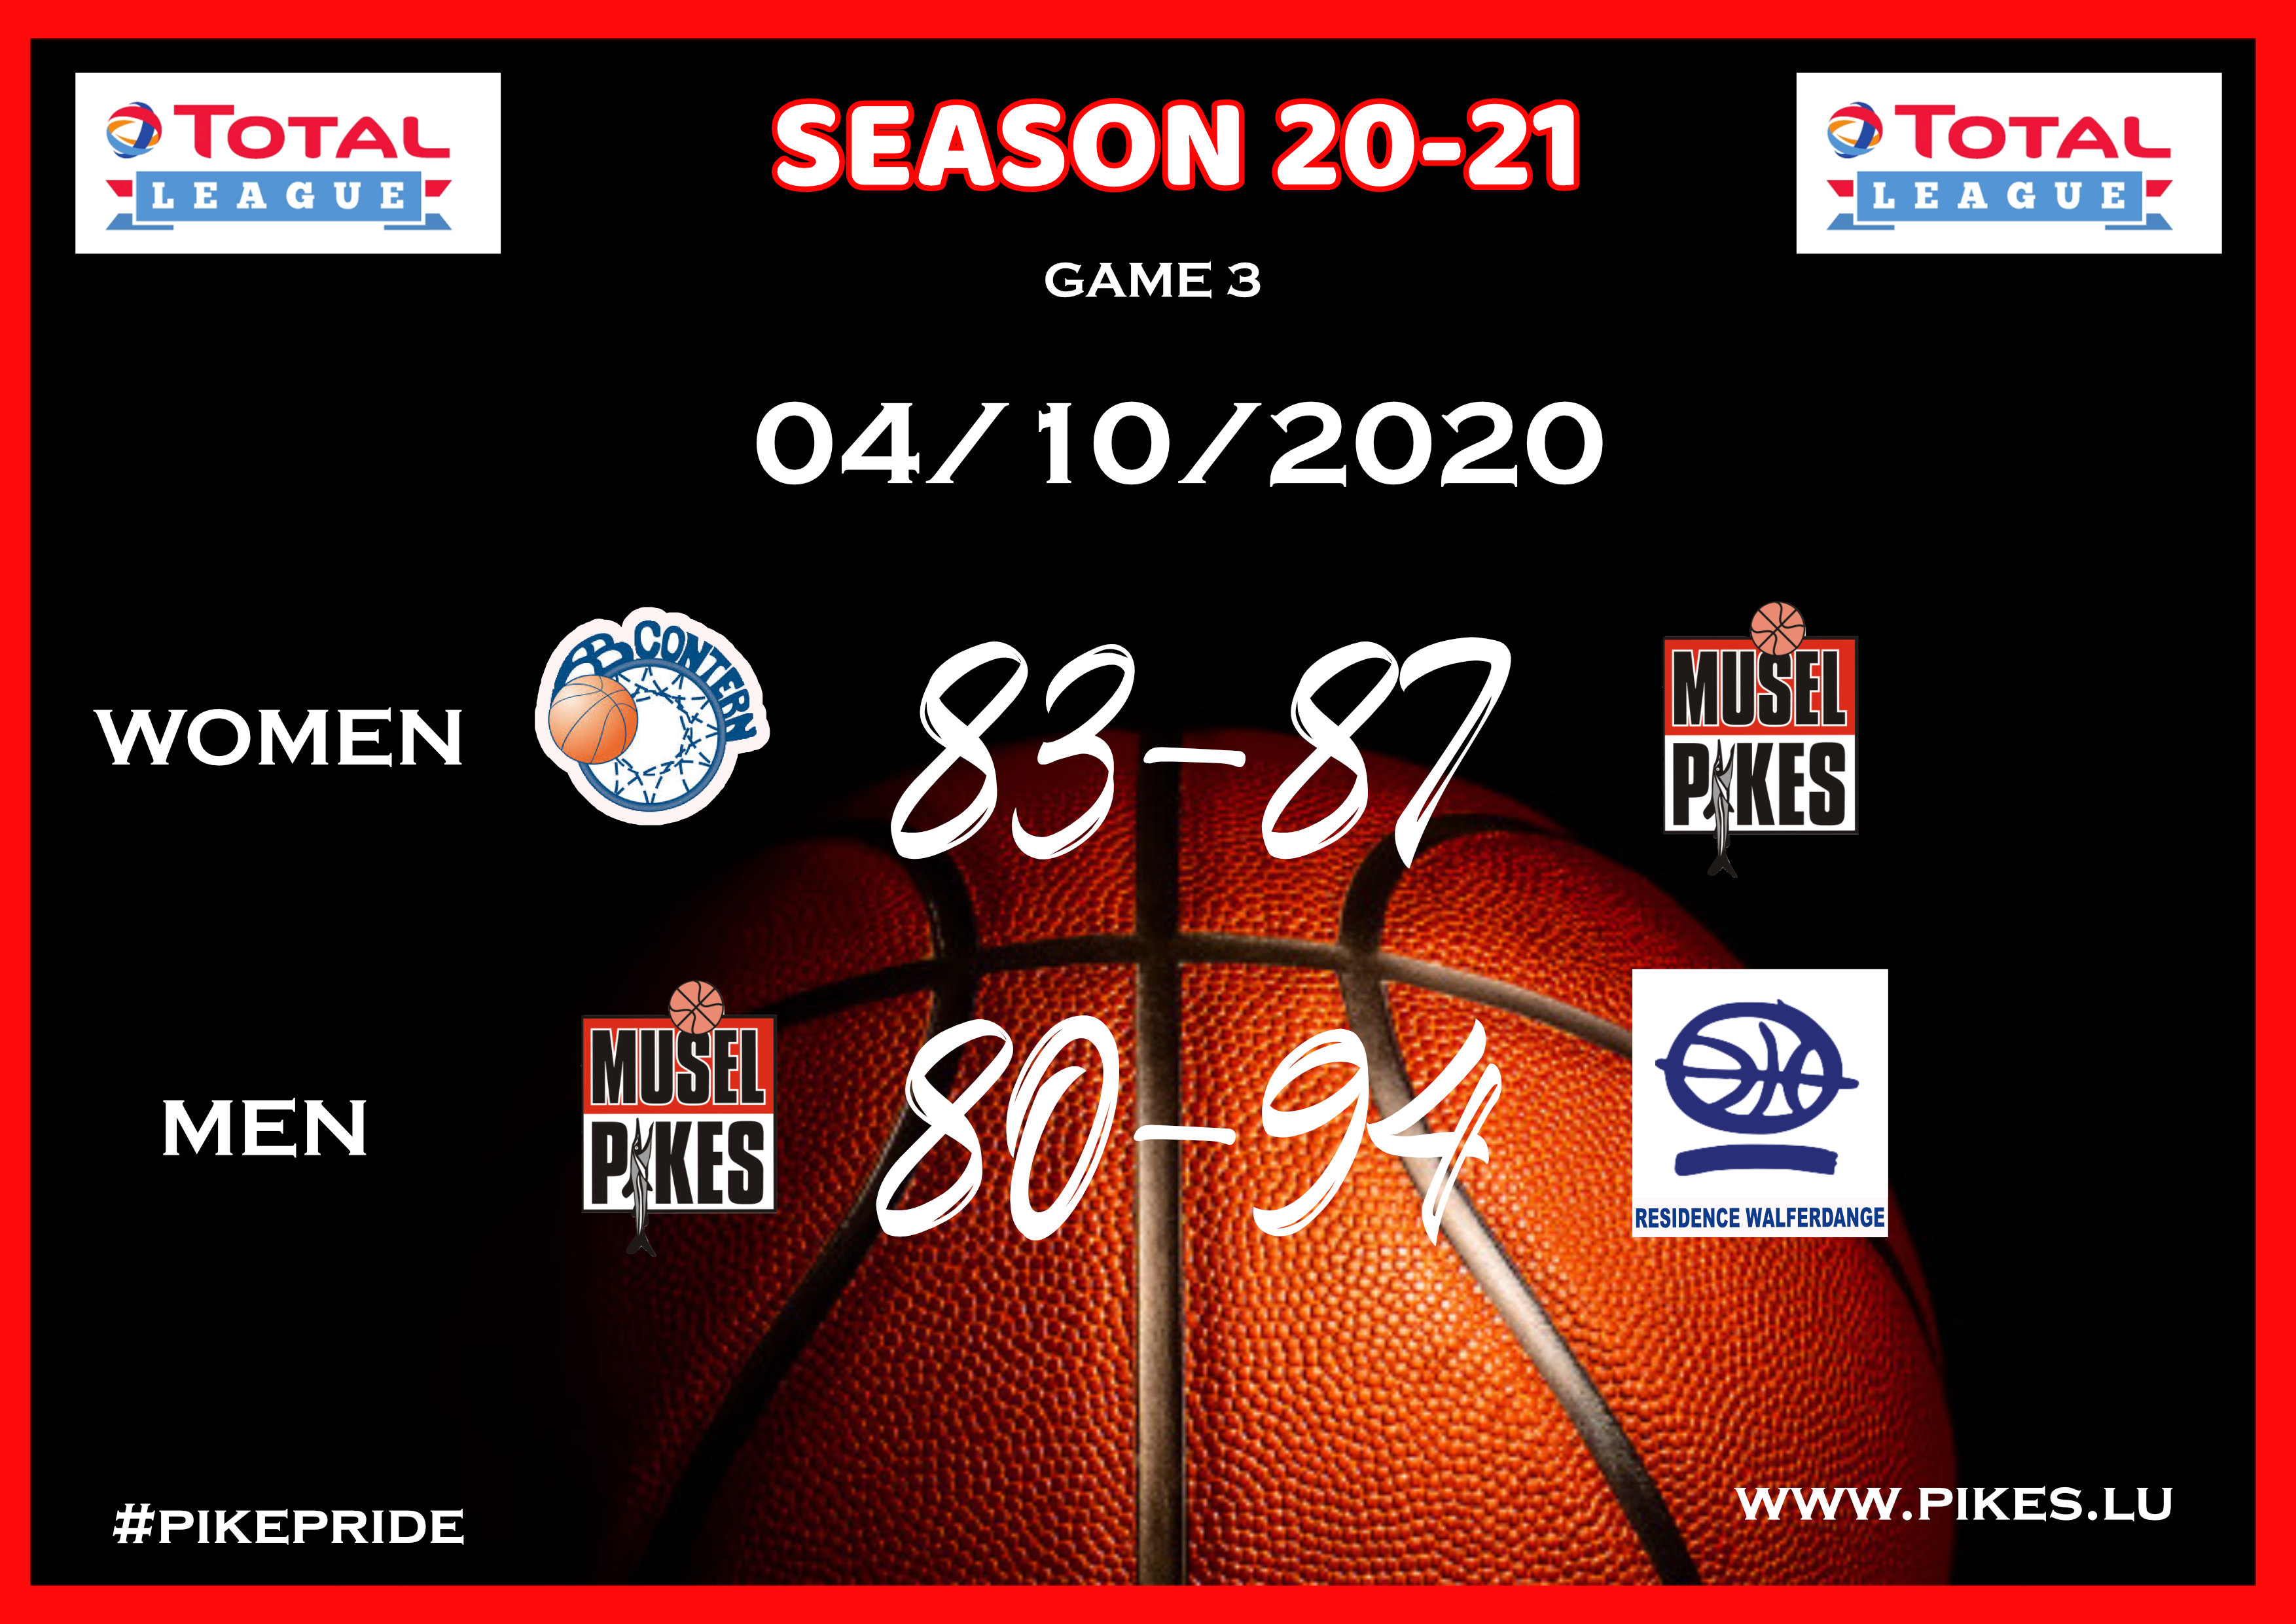 Game 3 Results